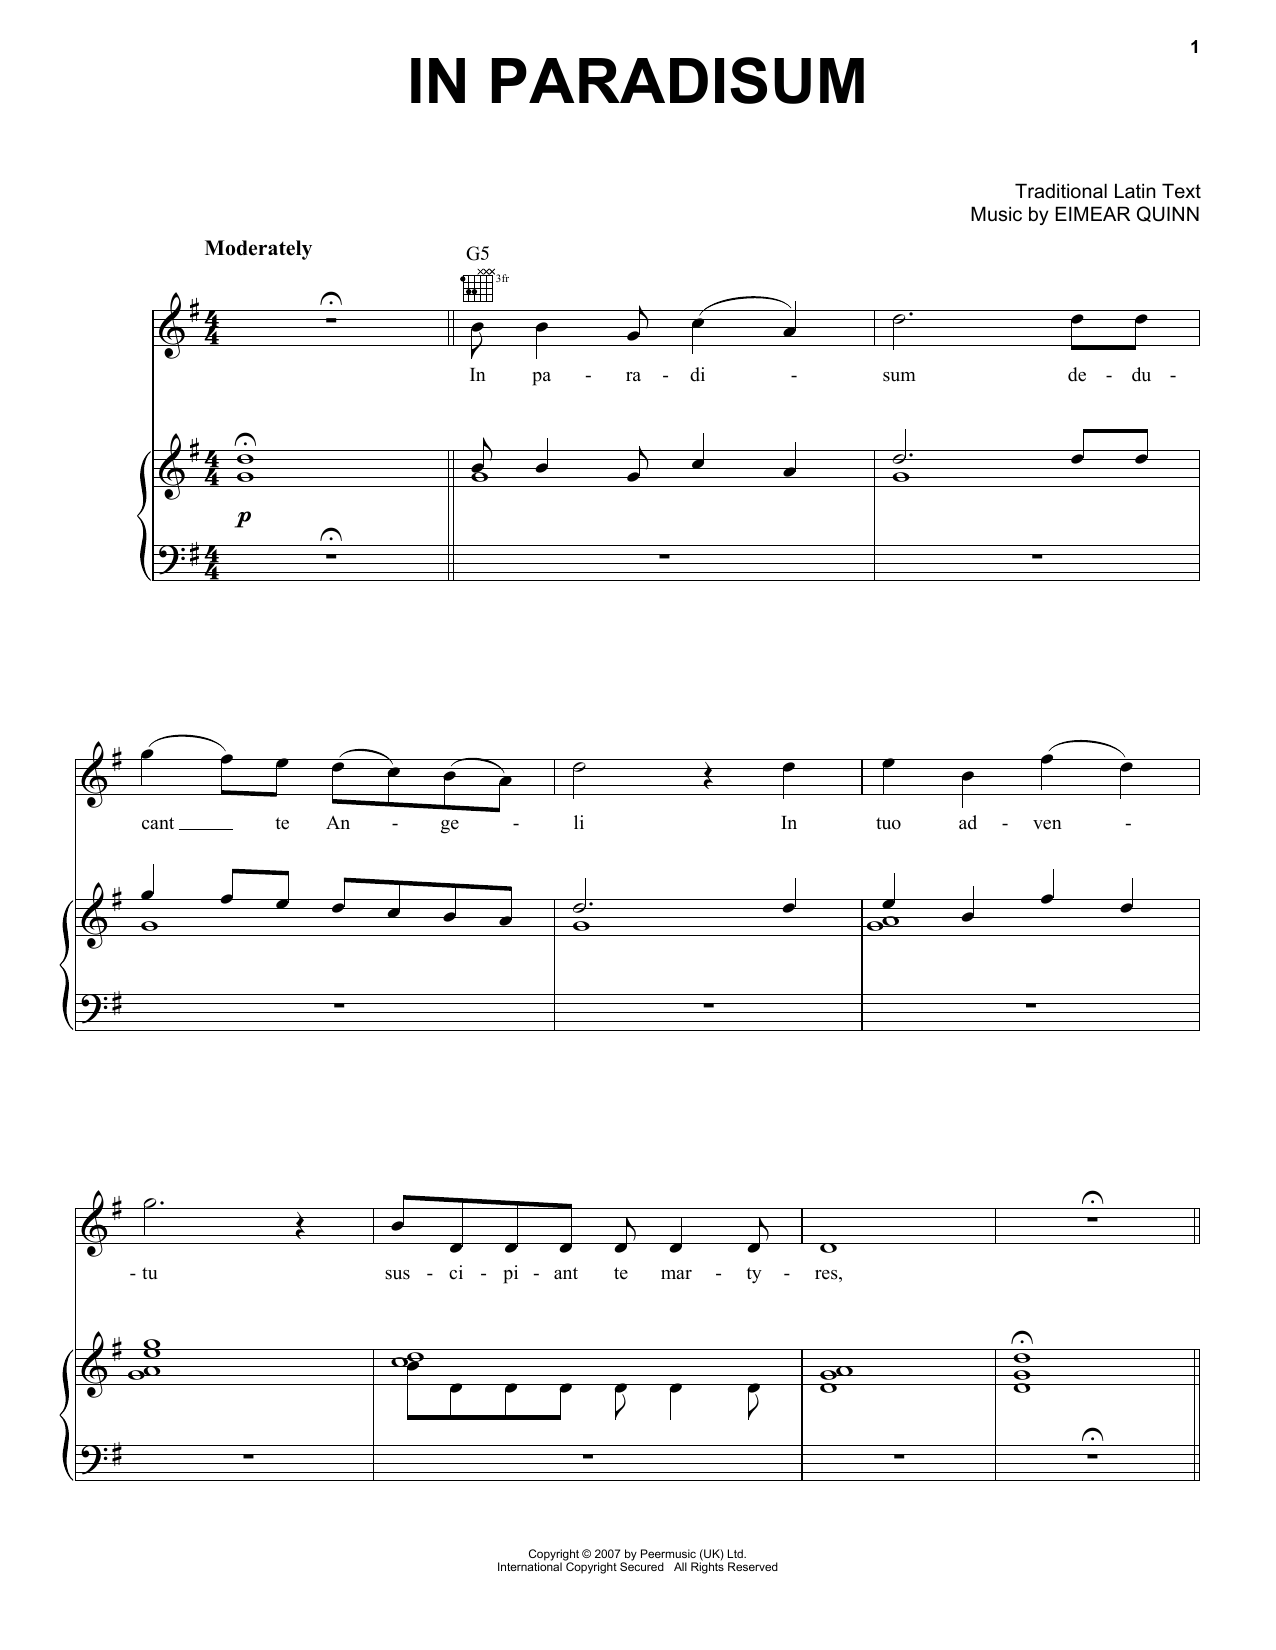 Eimear Quinn In Paradisum sheet music notes and chords. Download Printable PDF.